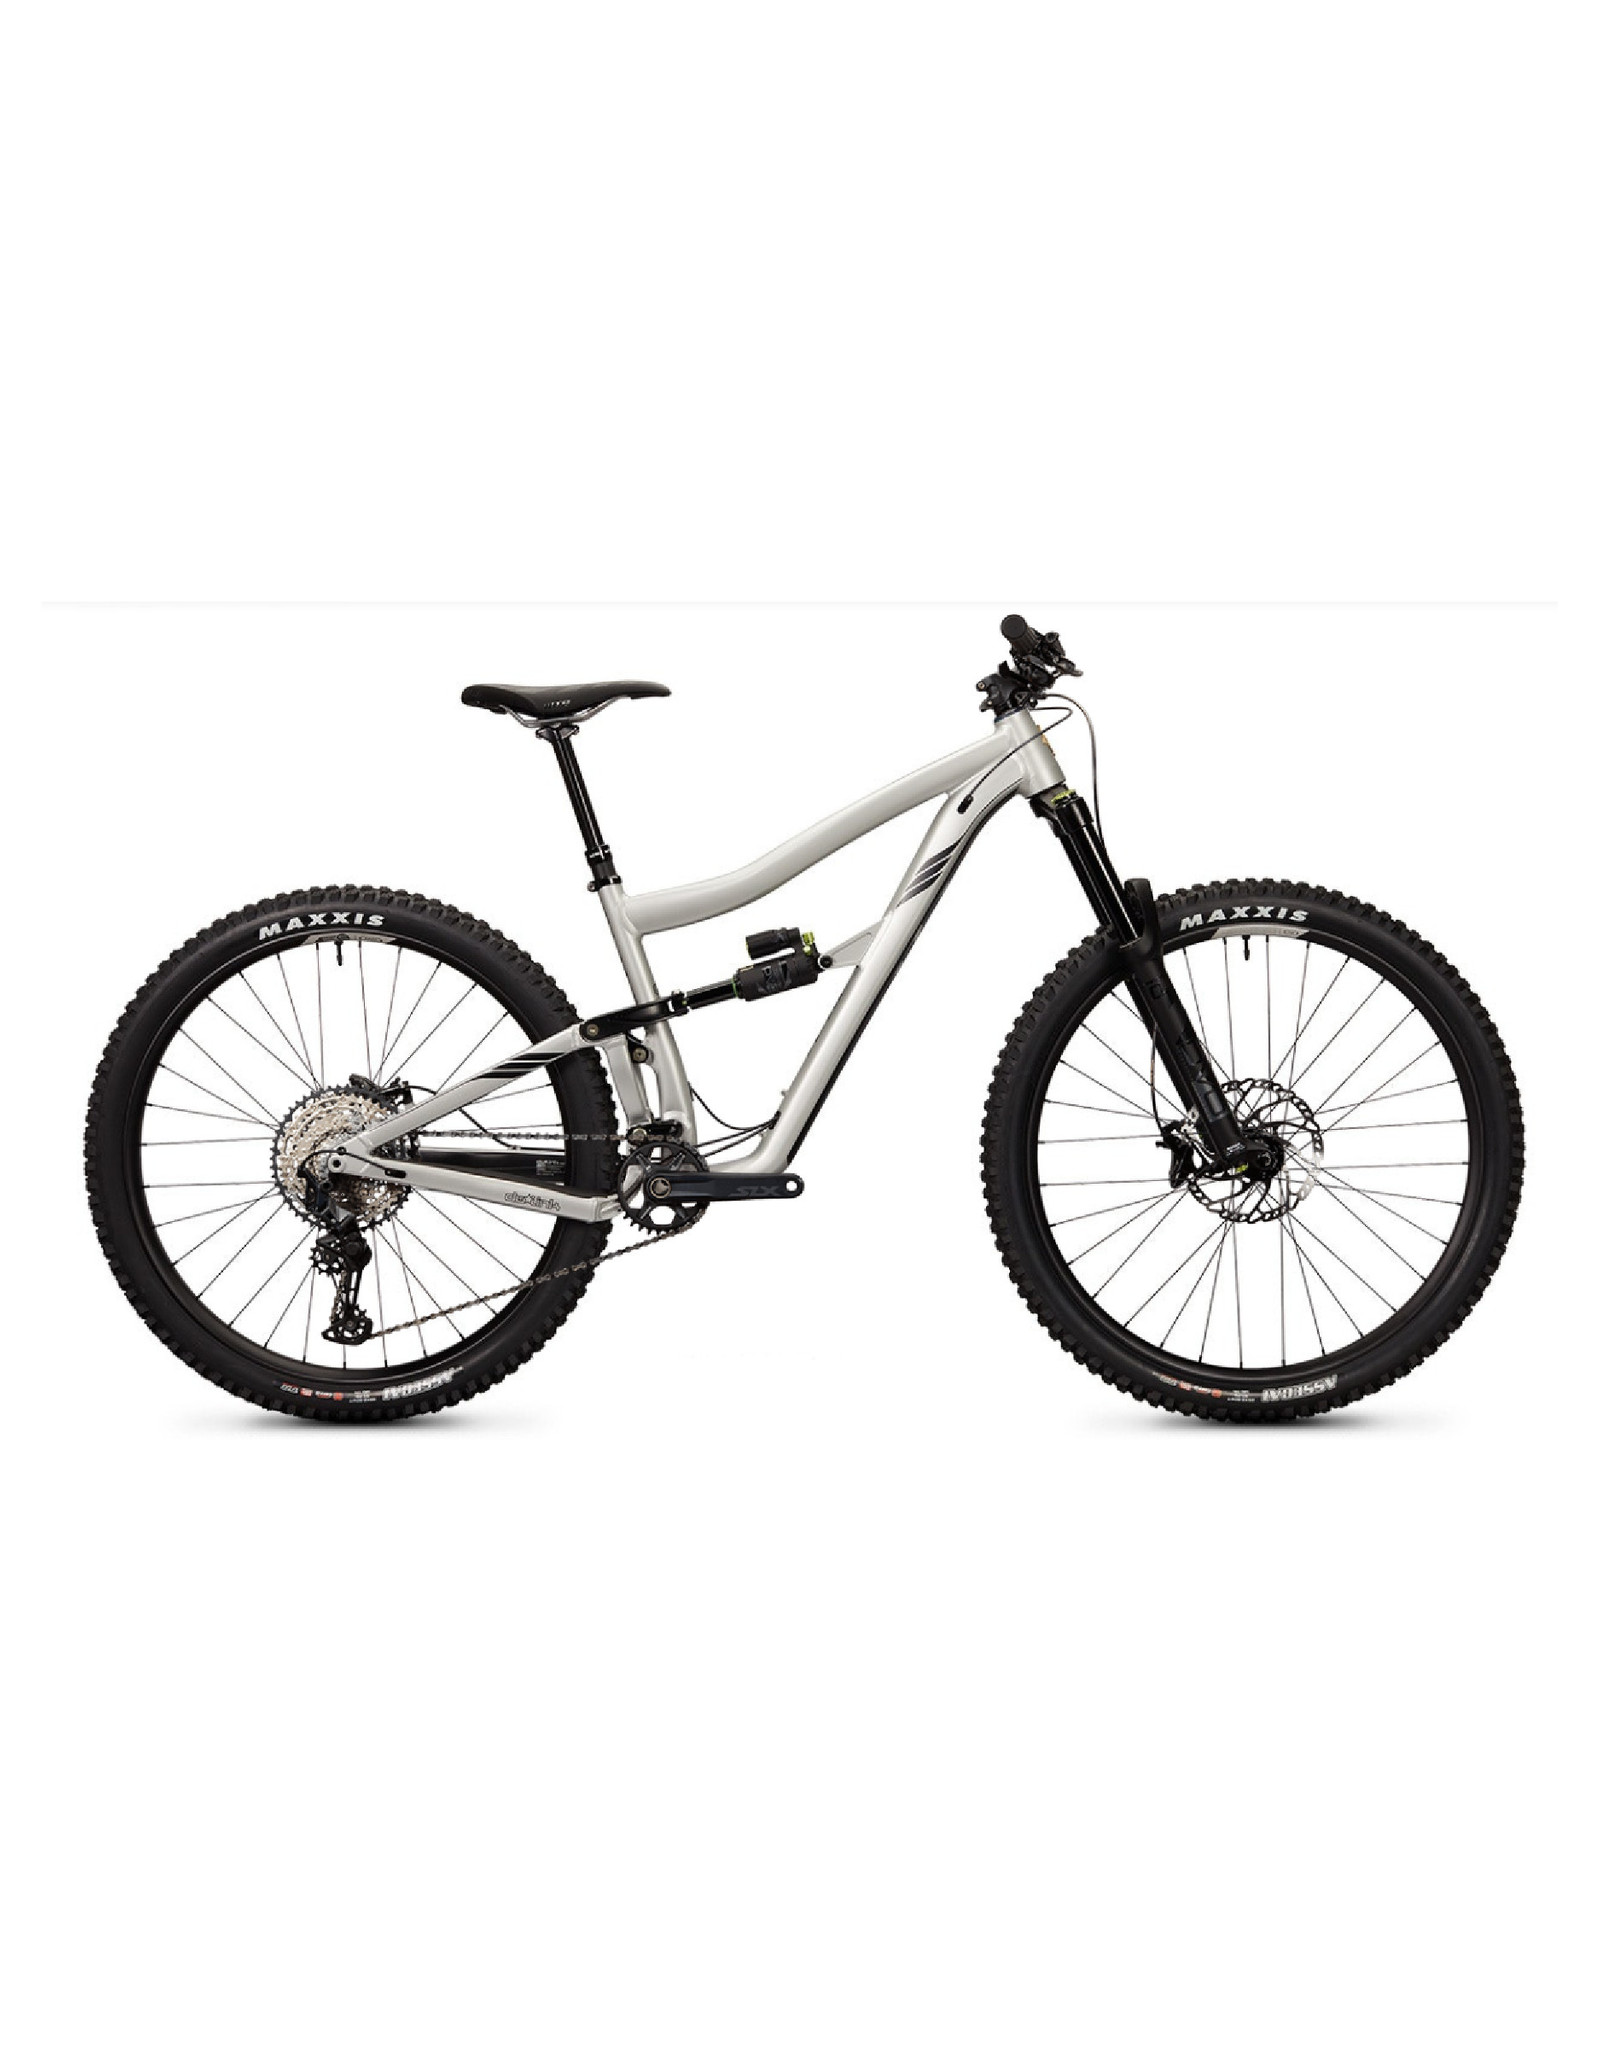 Ibis Ripmo AF SLX, Air Shock, Raw, Small